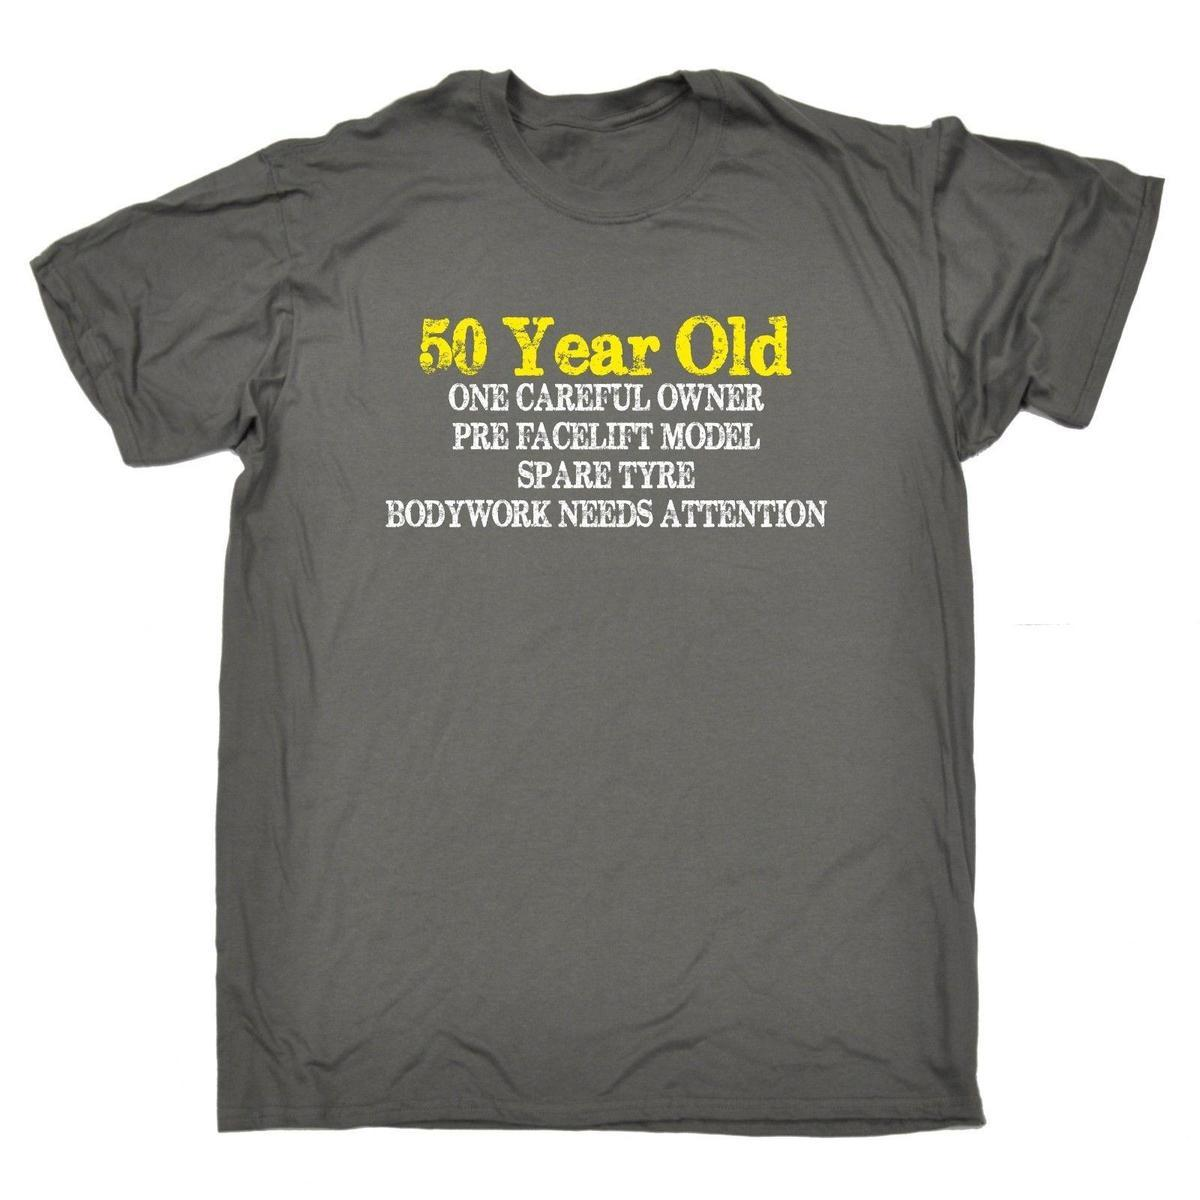 50 Year Old One Careful Owner T SHIRT Tee Birthday Gift Joke Funky Shirts For Women Shirt Purchase From Yuxin09 138